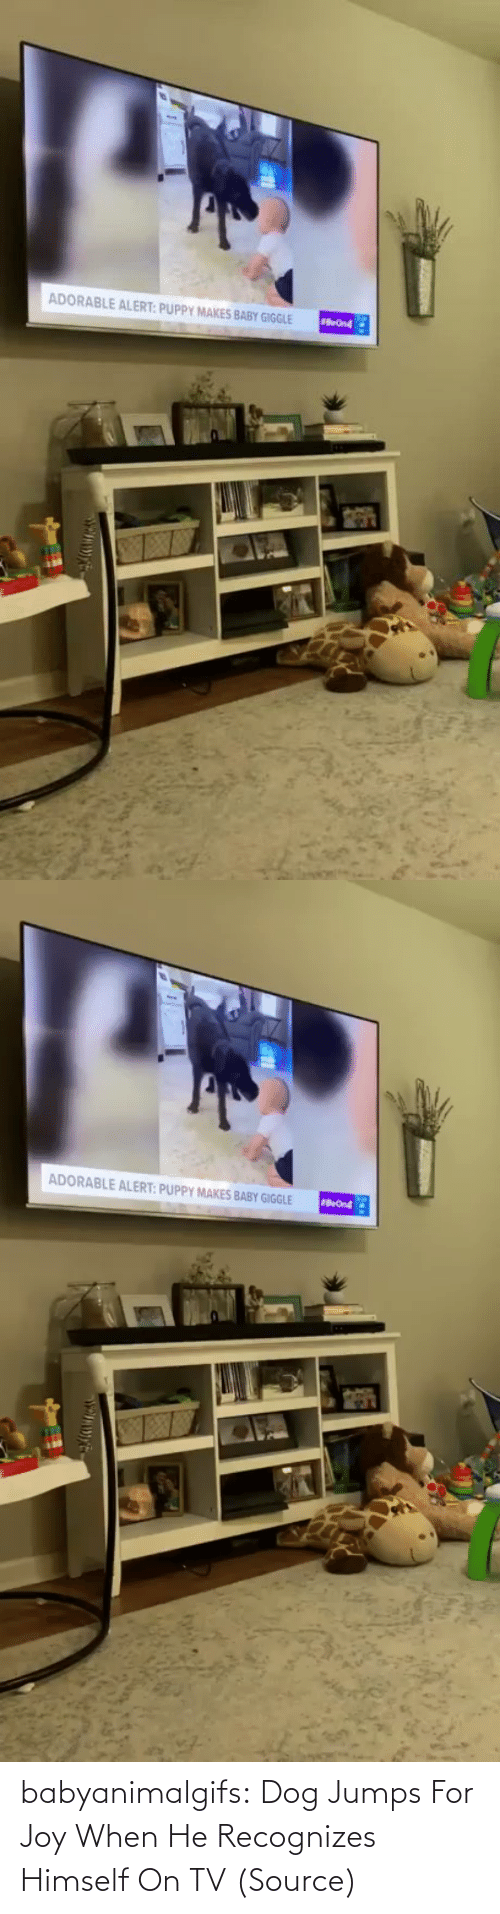 When He: babyanimalgifs:  Dog Jumps For Joy When He Recognizes Himself On TV(Source)